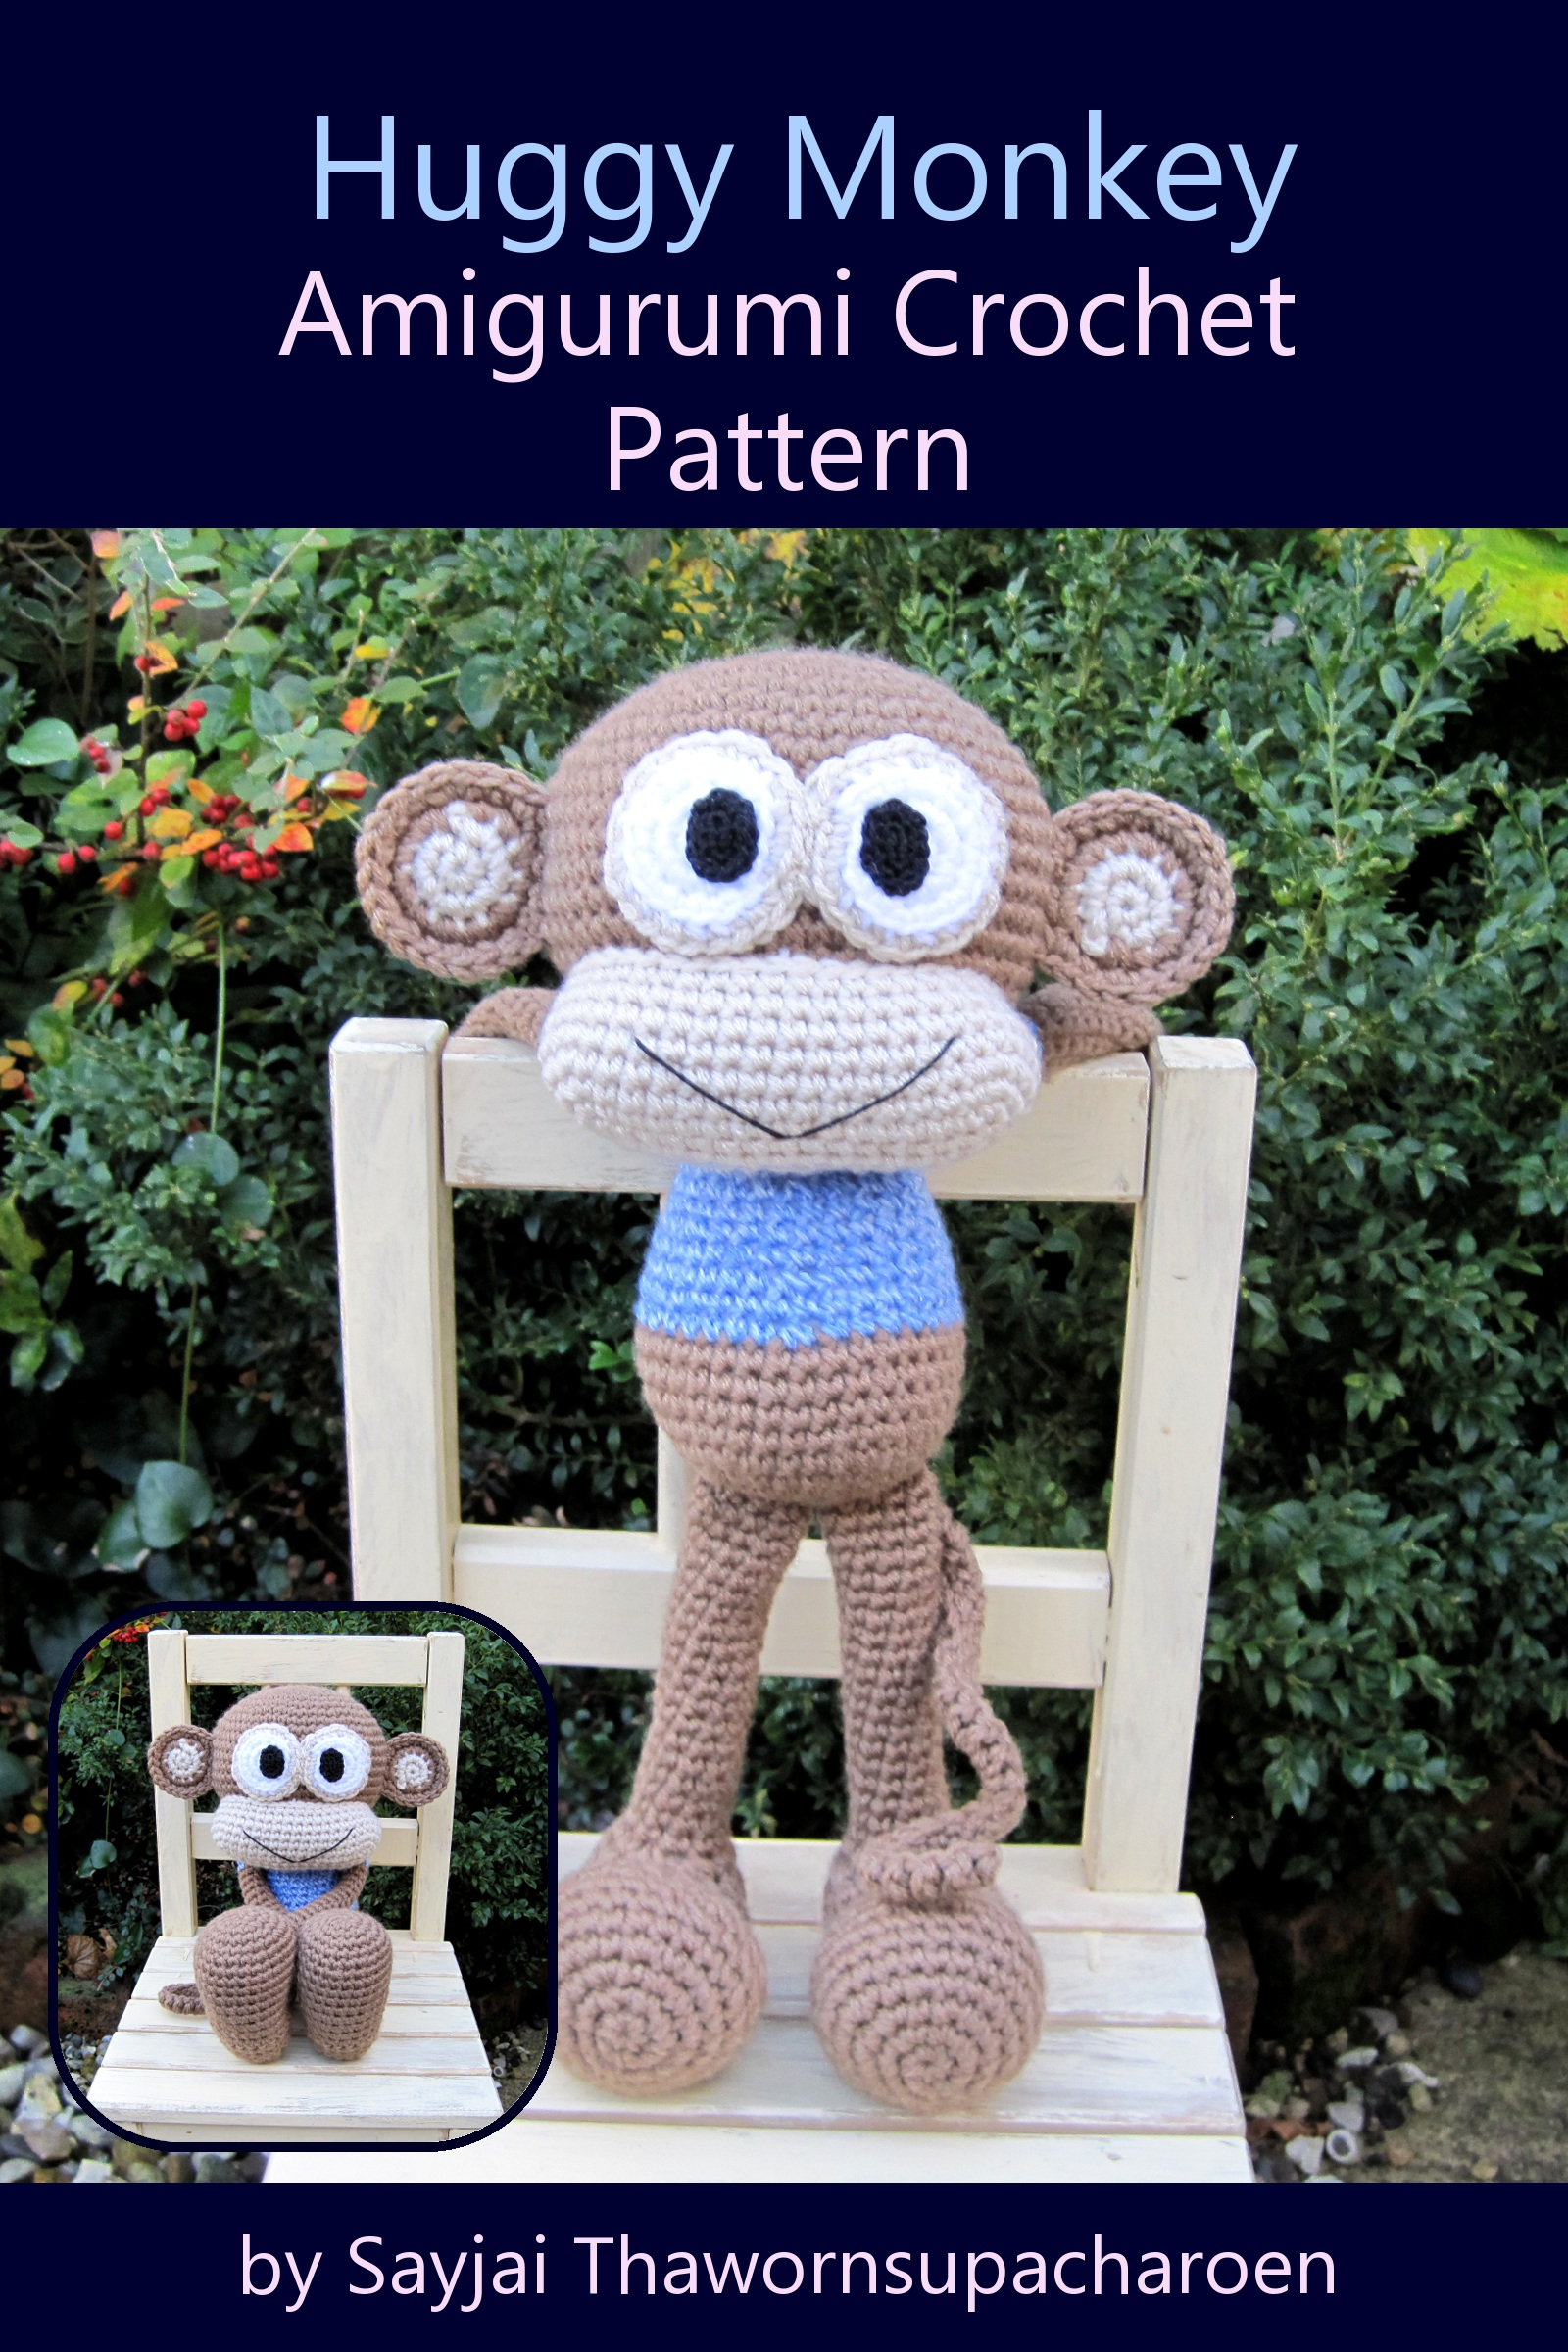 Huggy Monkey Amigurumi Crochet Pattern